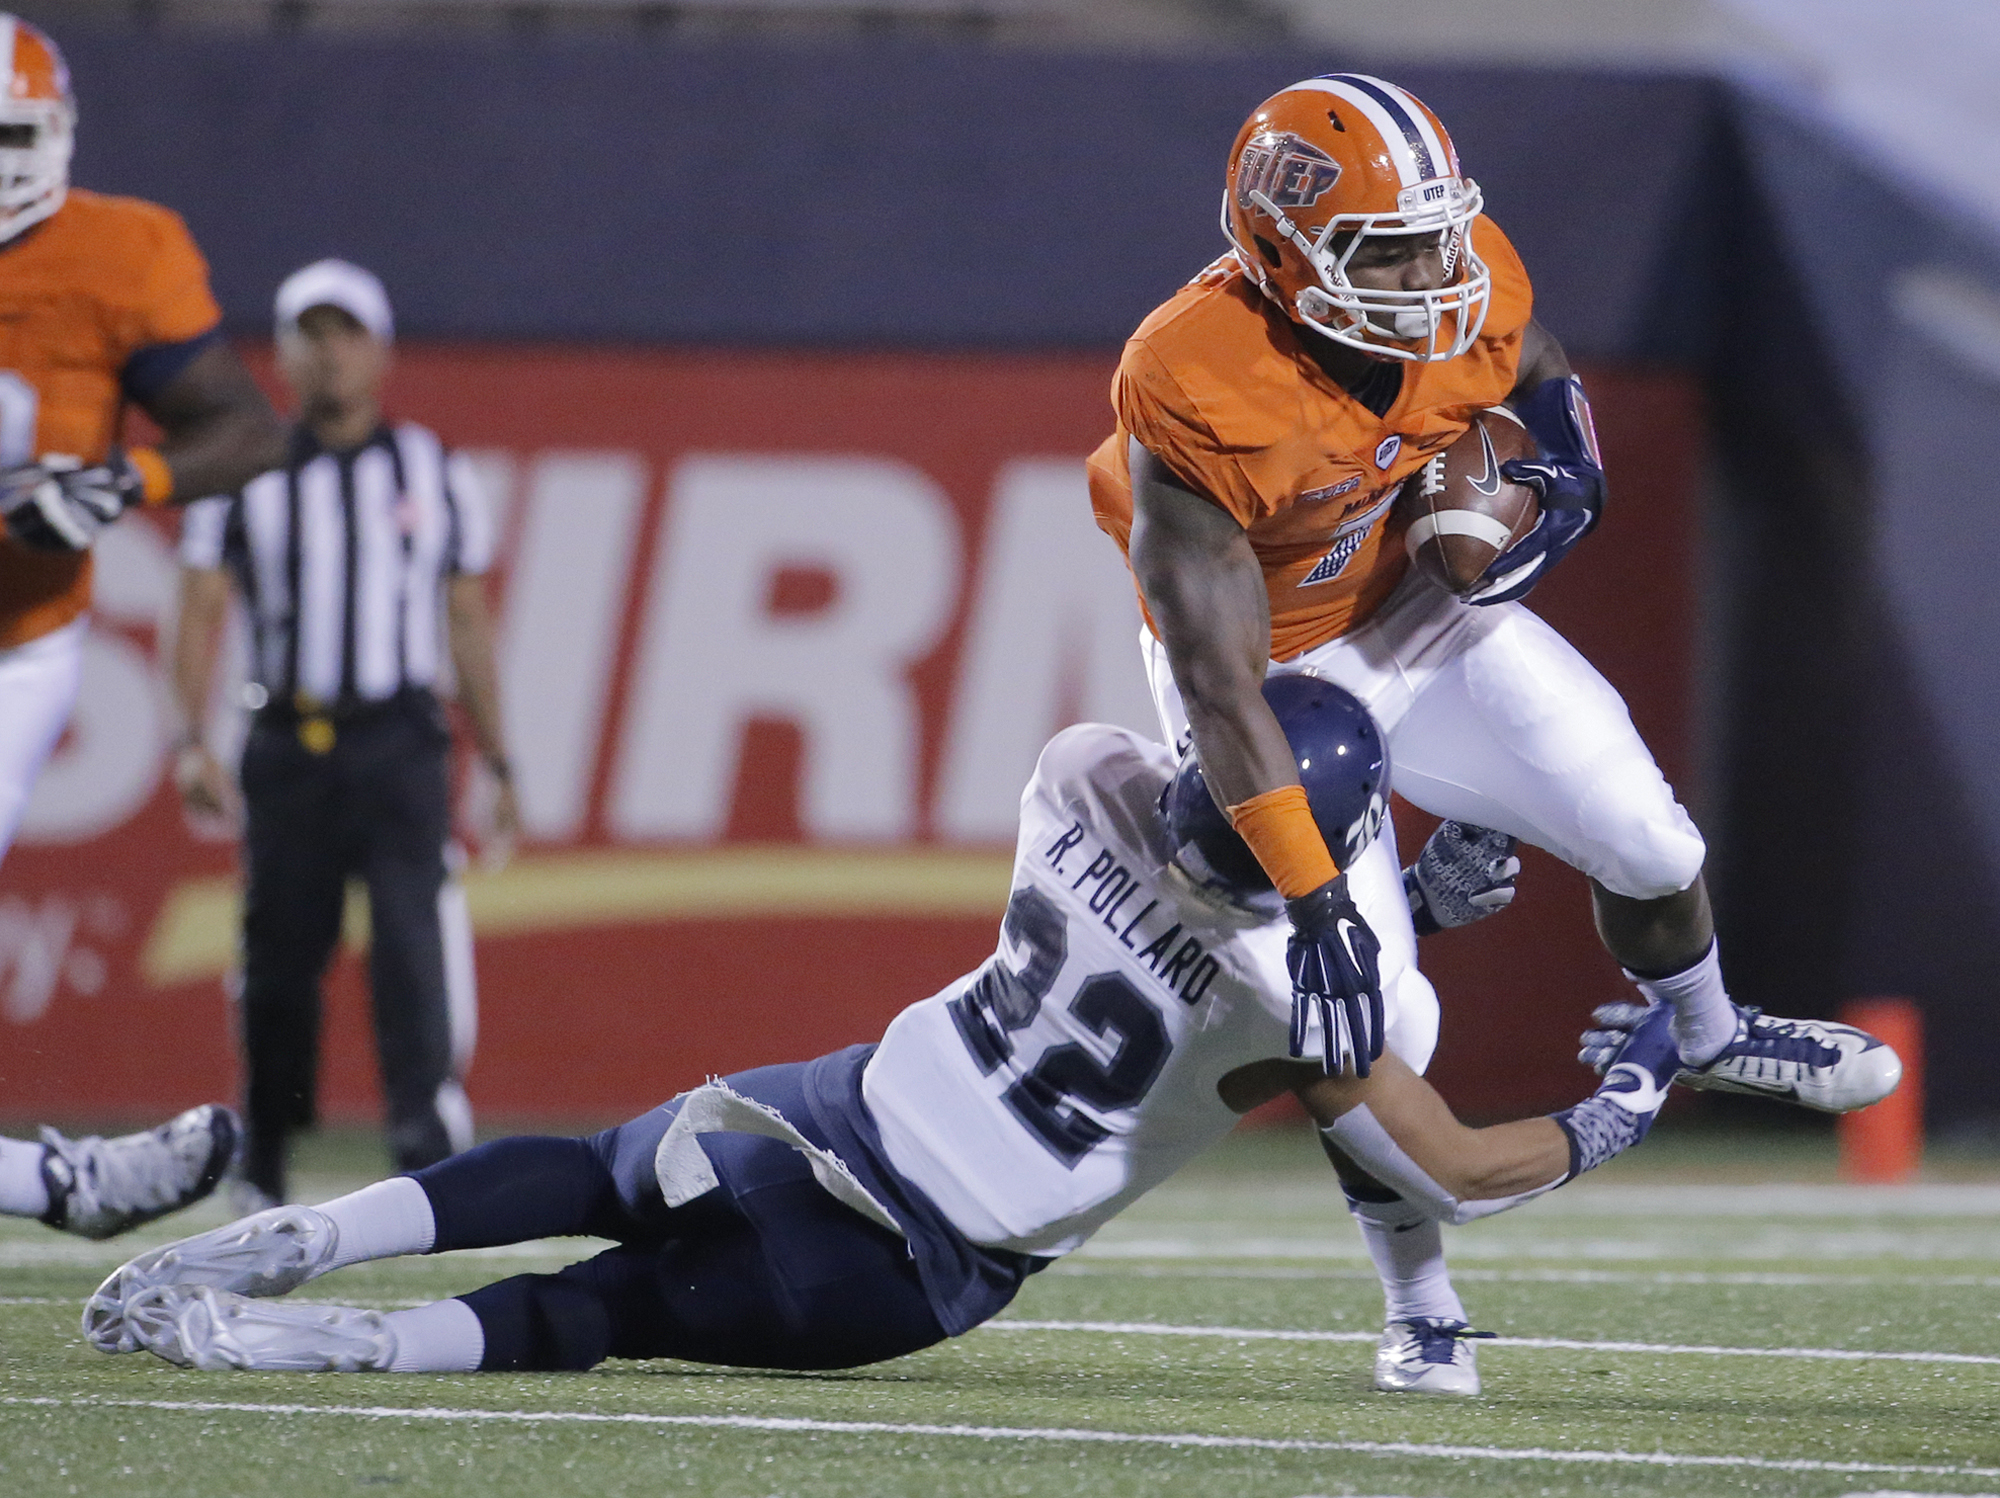 Rice cornerback Ryan Pollard tackles UTEP running back LaQuintus Dowell during the first half of an NCAA college football game Friday, Nov. 6, 2015, in El Paso, Texas. (Mark Lambie/El Paso Times via AP)